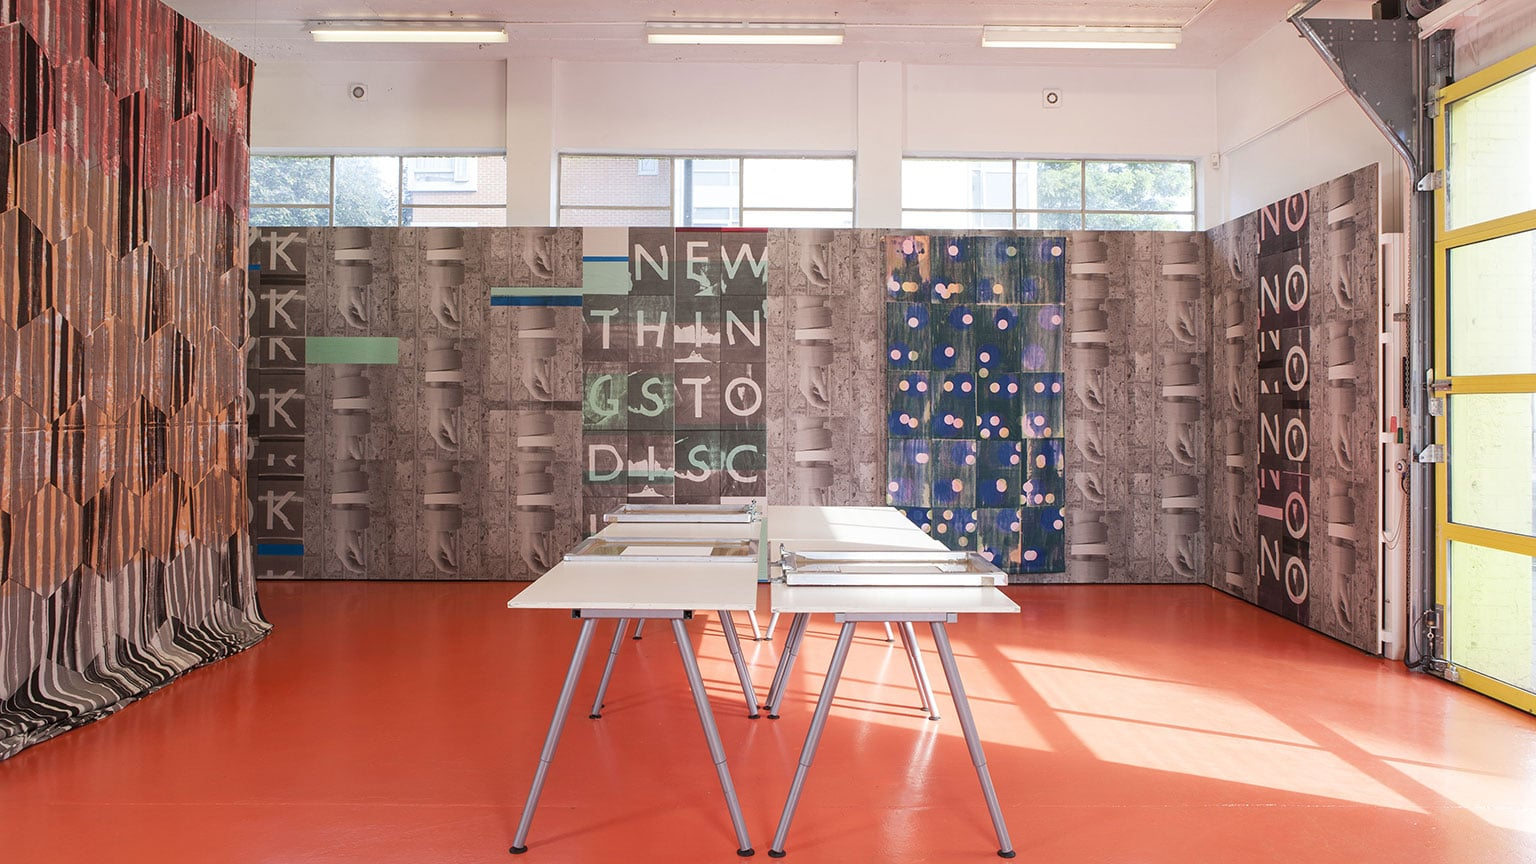 Ciara Phillips, Workshop, 2010 – ongoing. Installation view from The Showroom, London 2013